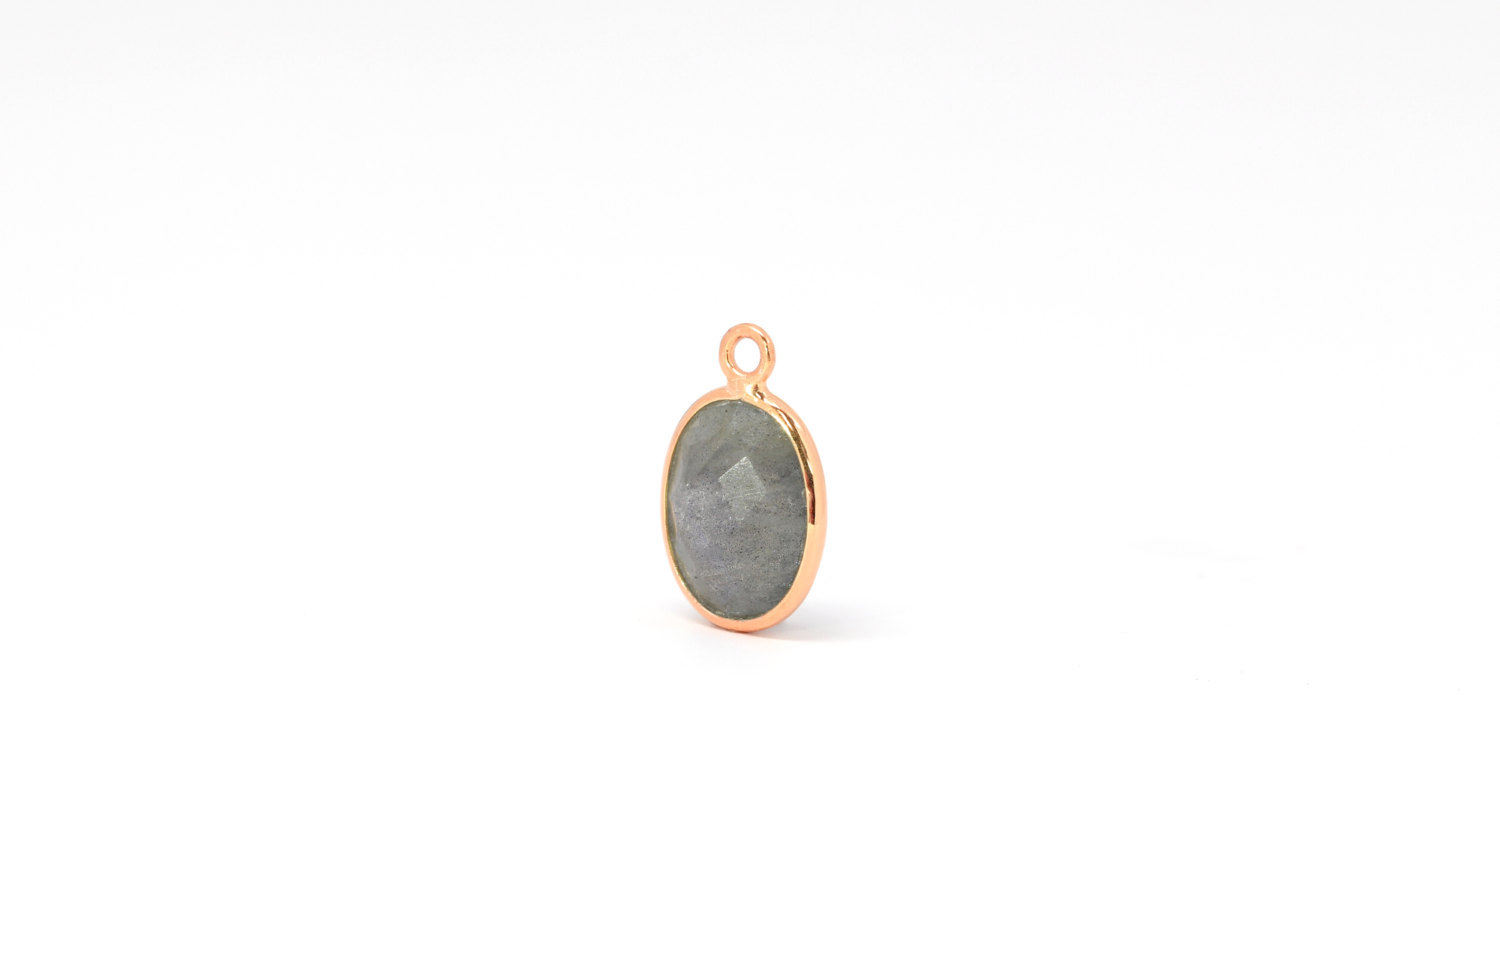 Primary image for  Drop, Oval Labradorite, Rose Gold Plated Sterling Silver, 14x10mm, 1pc (7072)/1